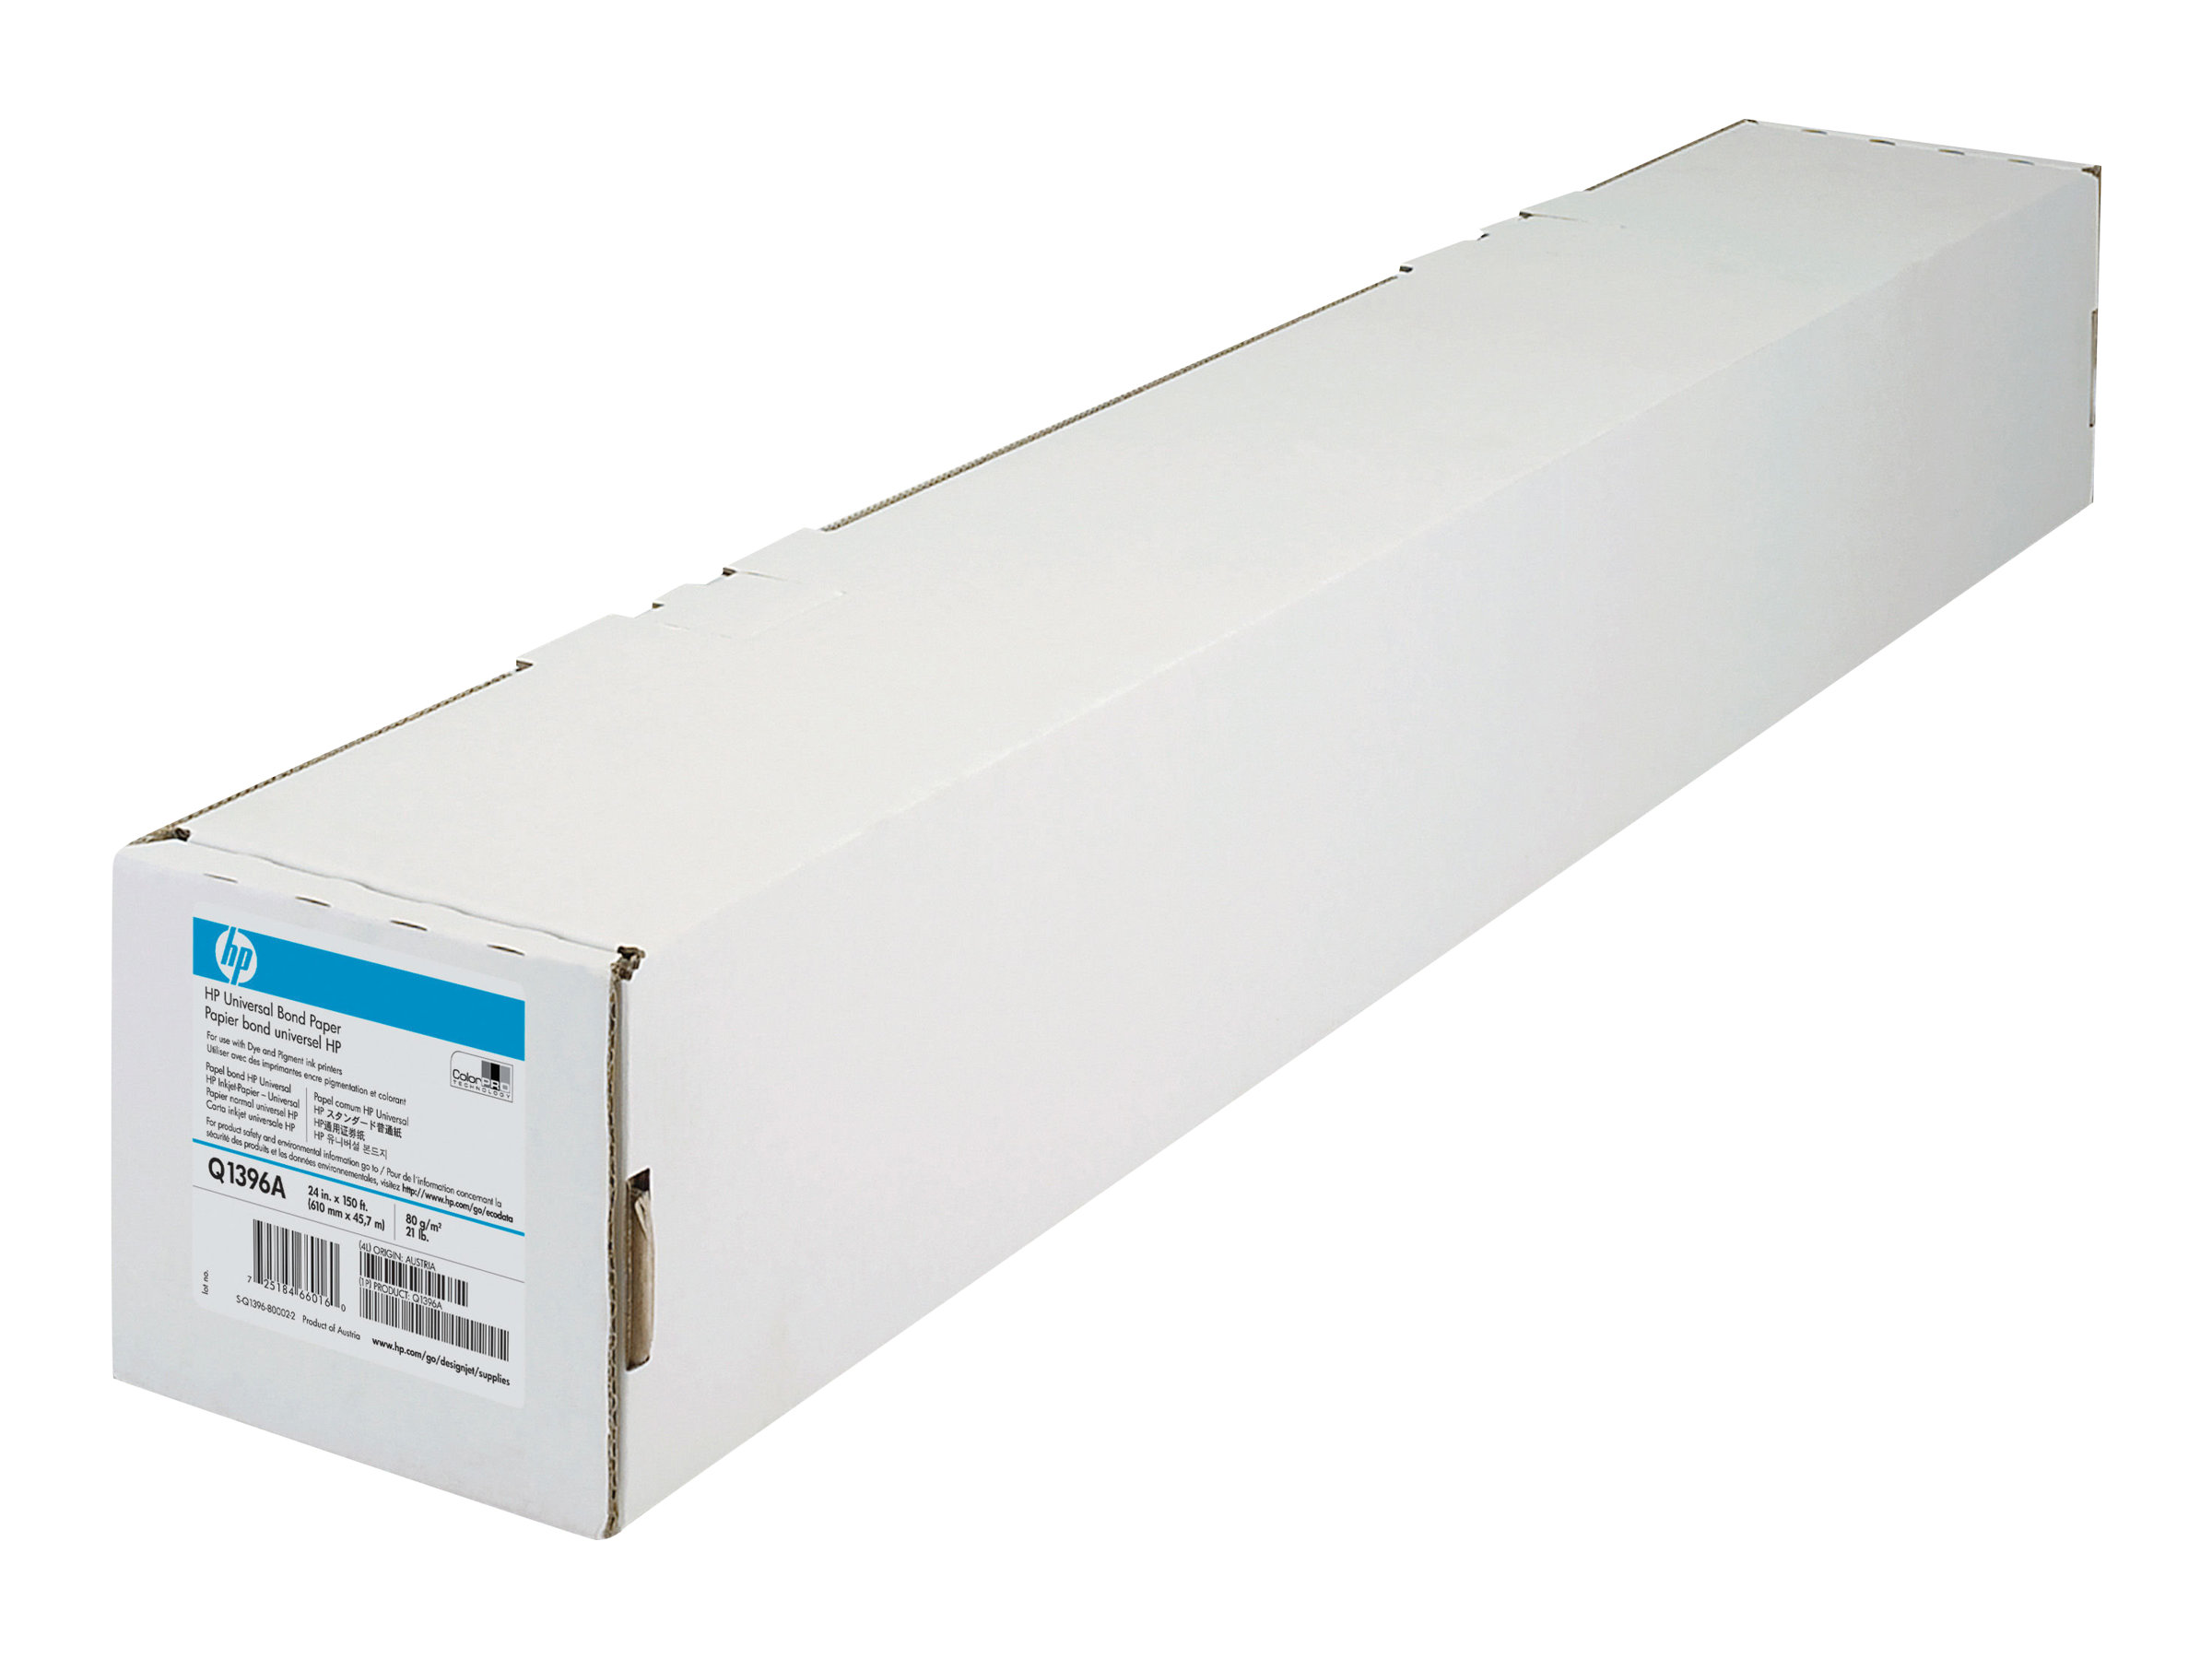 HP Universal - Rolle A1 (61,0 cm x 45,7 m) - 80 g/m² - 1 Stck. Bondpapier - für DesignJet 11X, 45XX, T1100, T1120, T1200, T1300, T2300, T620, T770, T790, Z2600, Z6200